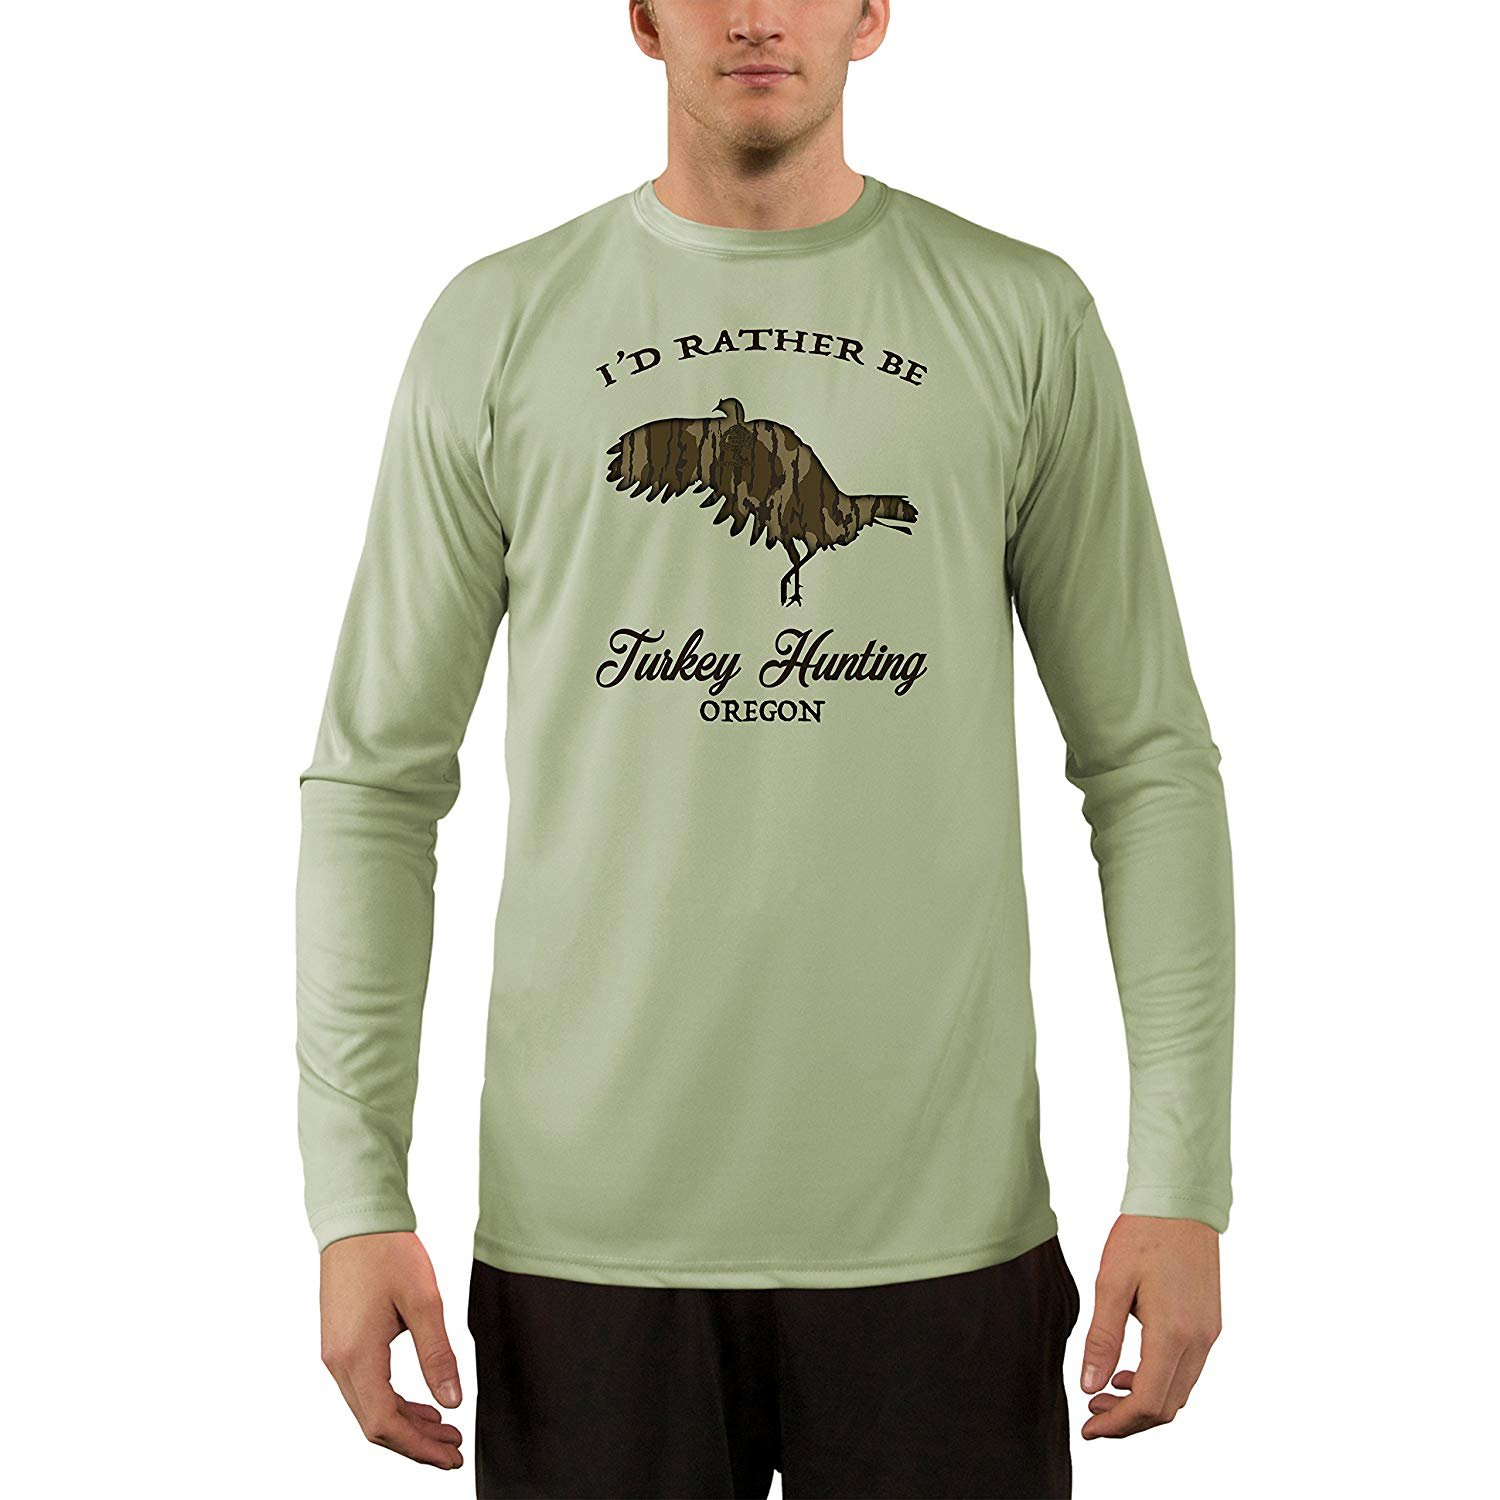 Mossy Oak Oak Oak Original Bottomland Turkey Flying Oregon Uomo's UPF 50+ T-Shirt 7cf8a6